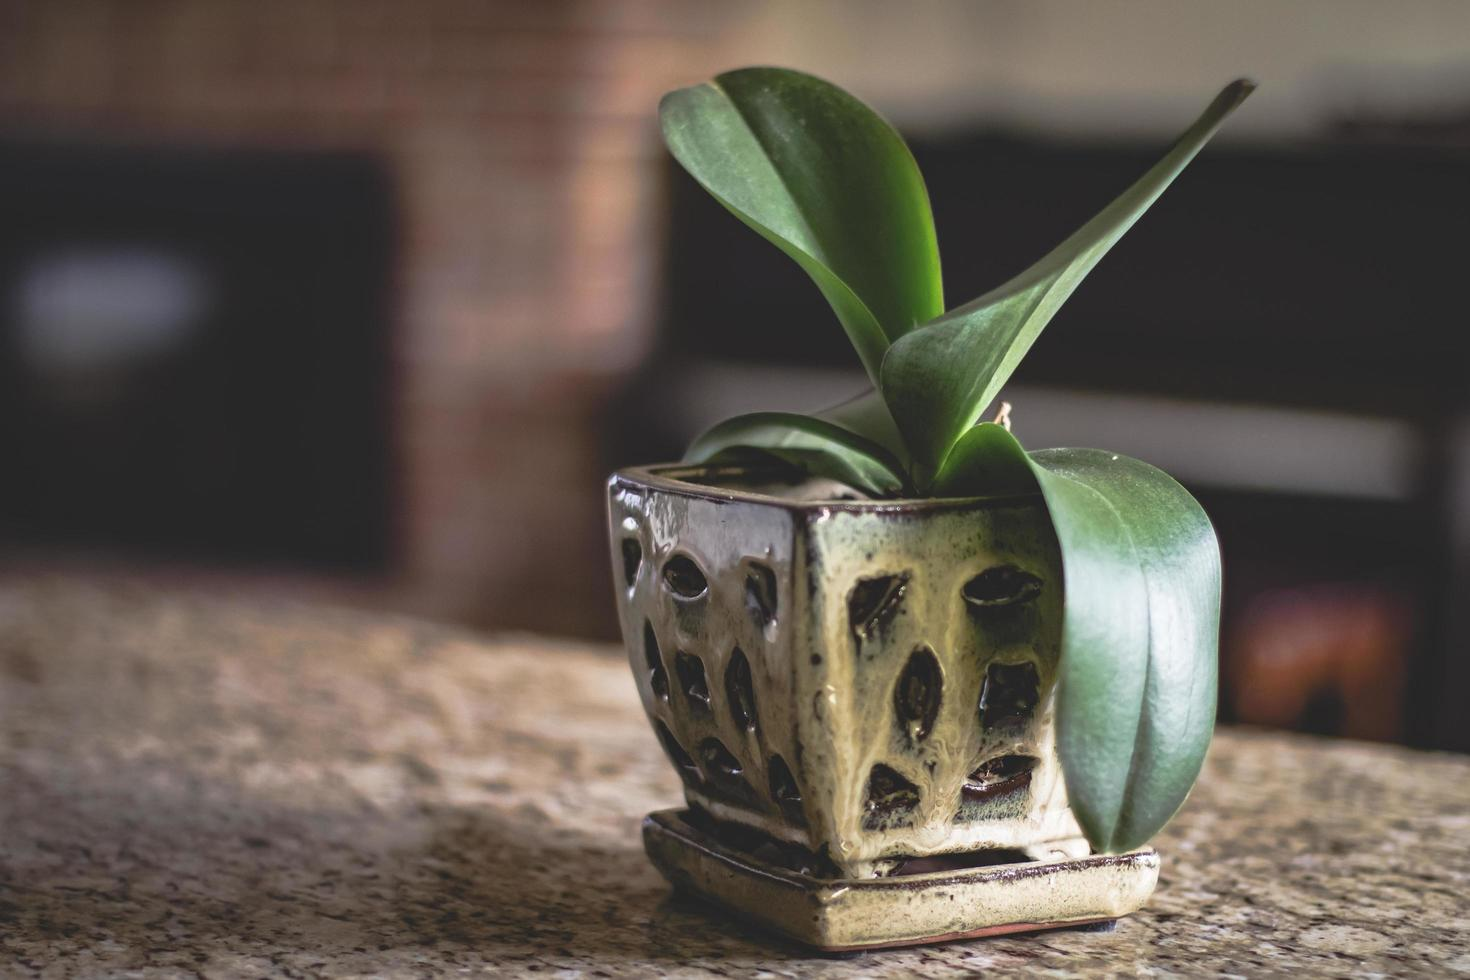 Green potted plant photo